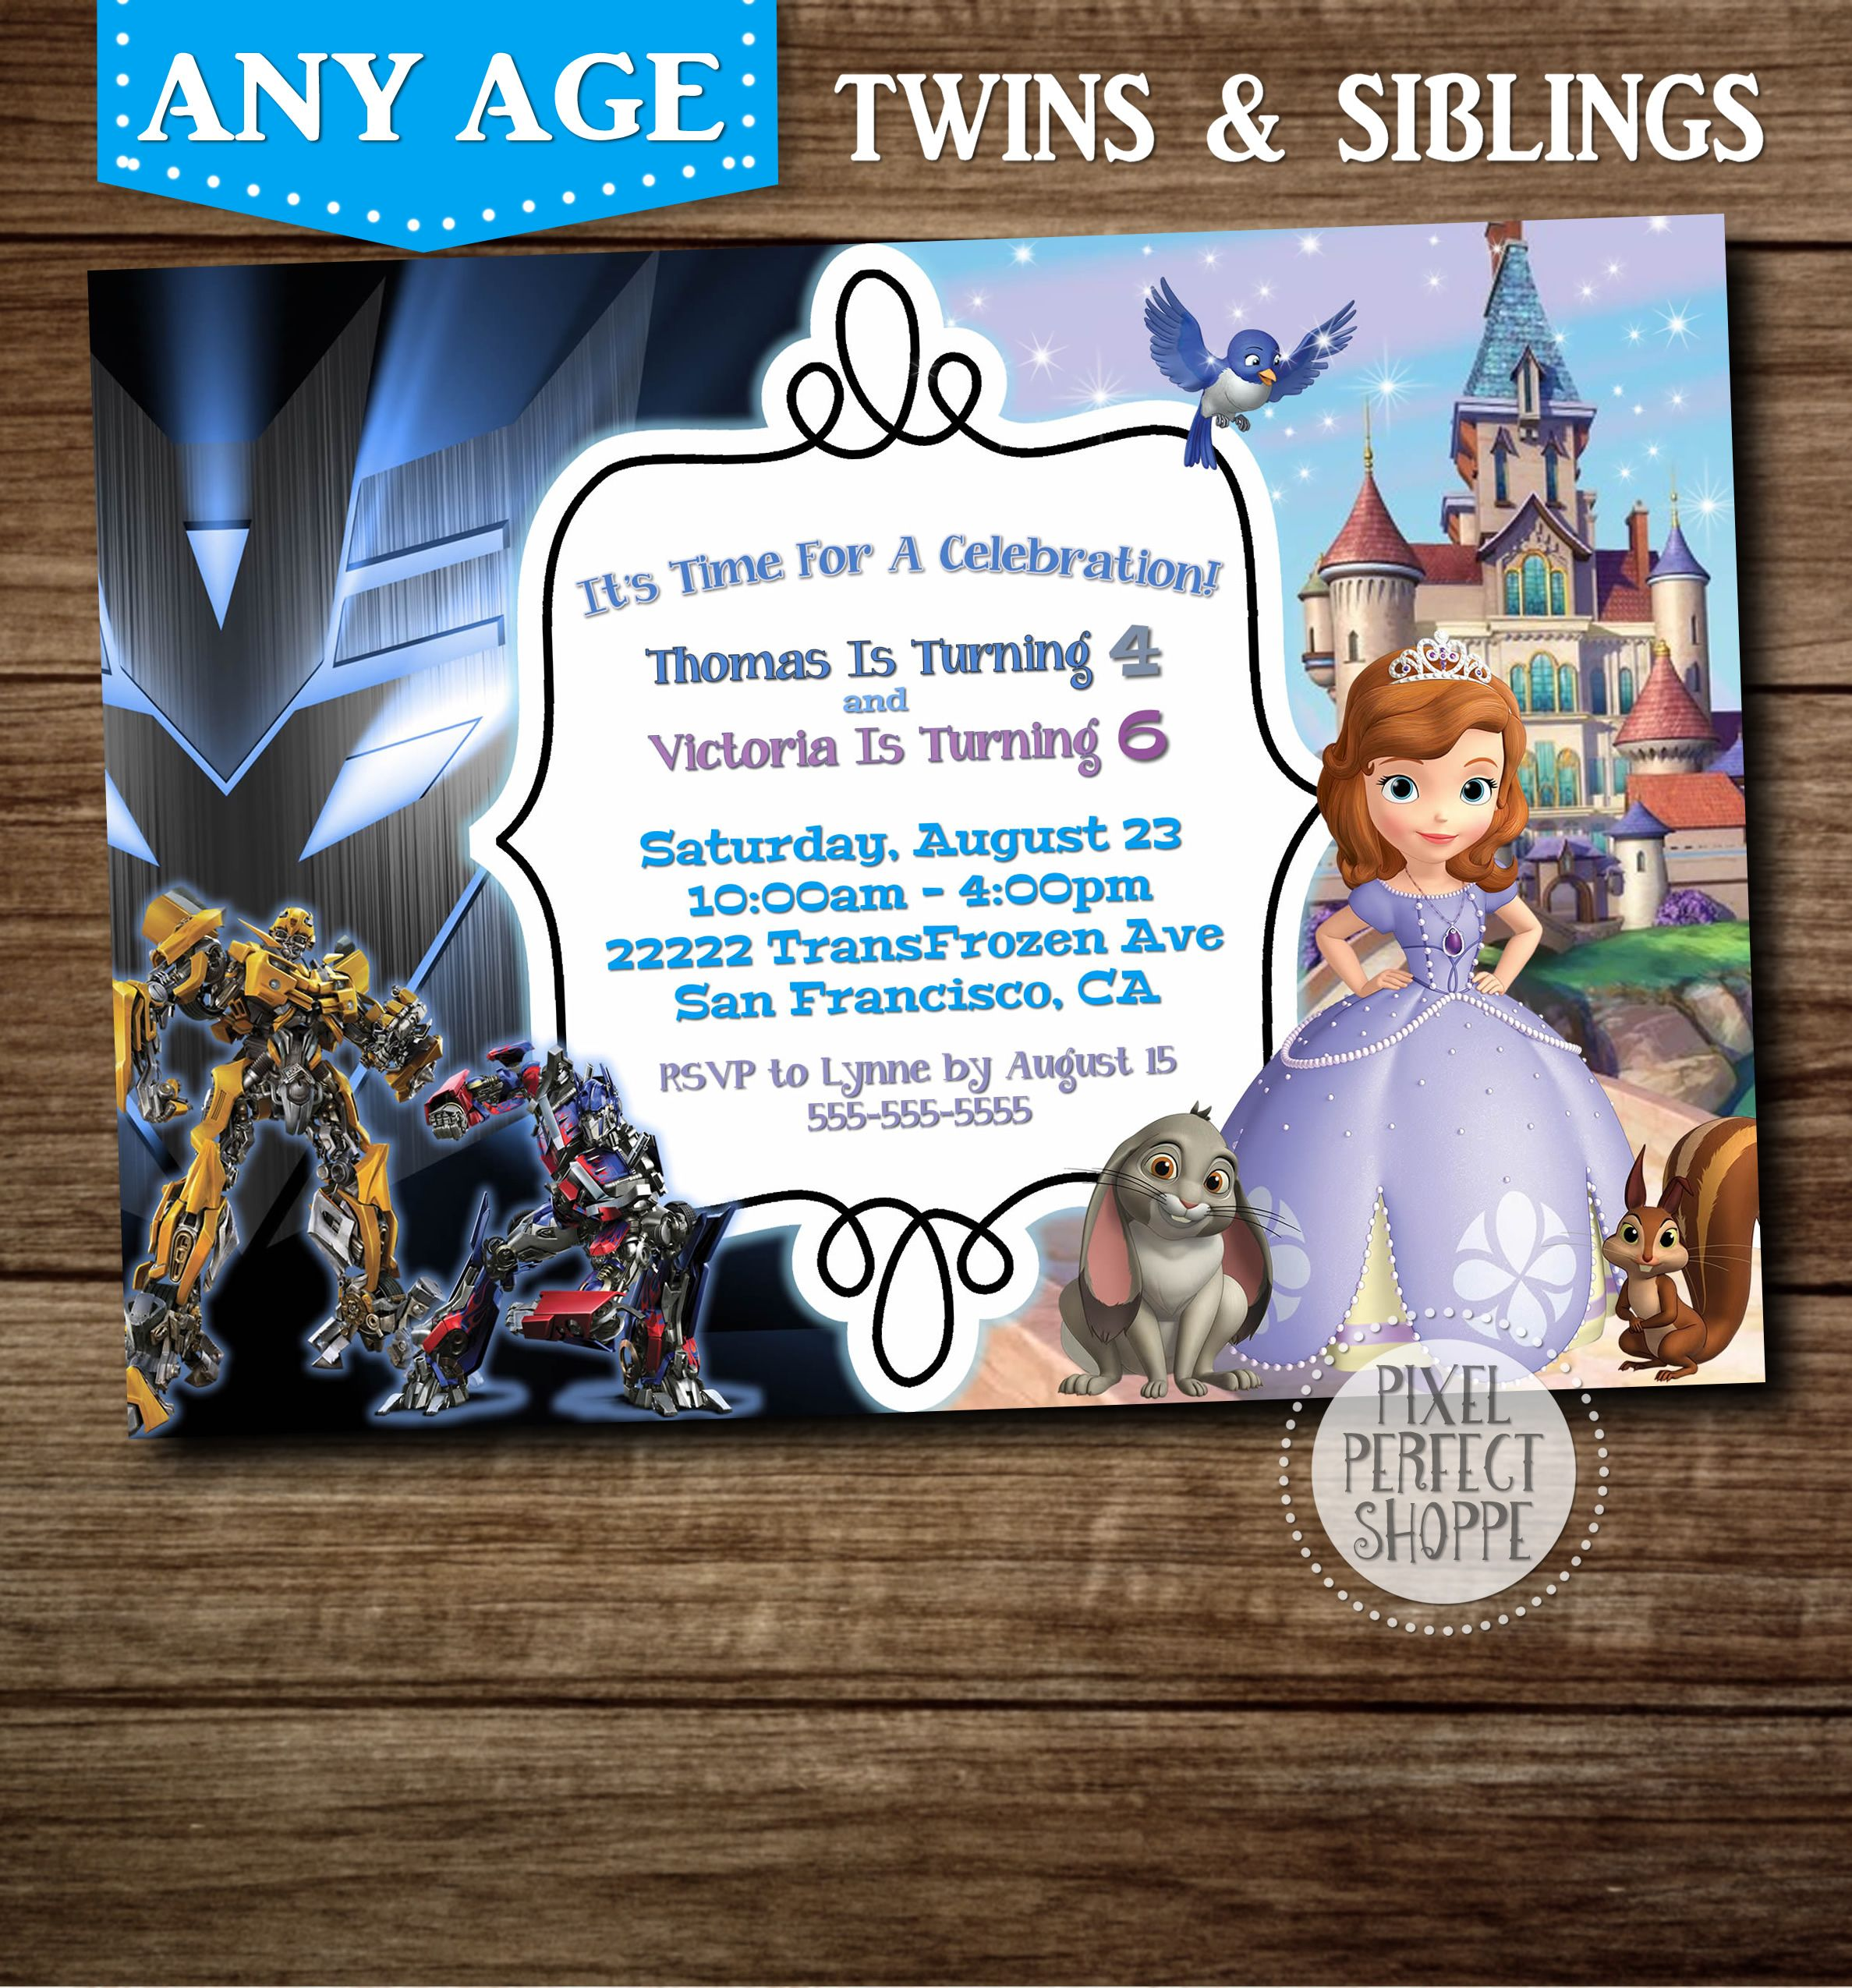 Transformers And Sophia The First Birthday Invitation For Boys Girls Brother Sister Friends Siblings Twins Or Those Wanting Two Themes On